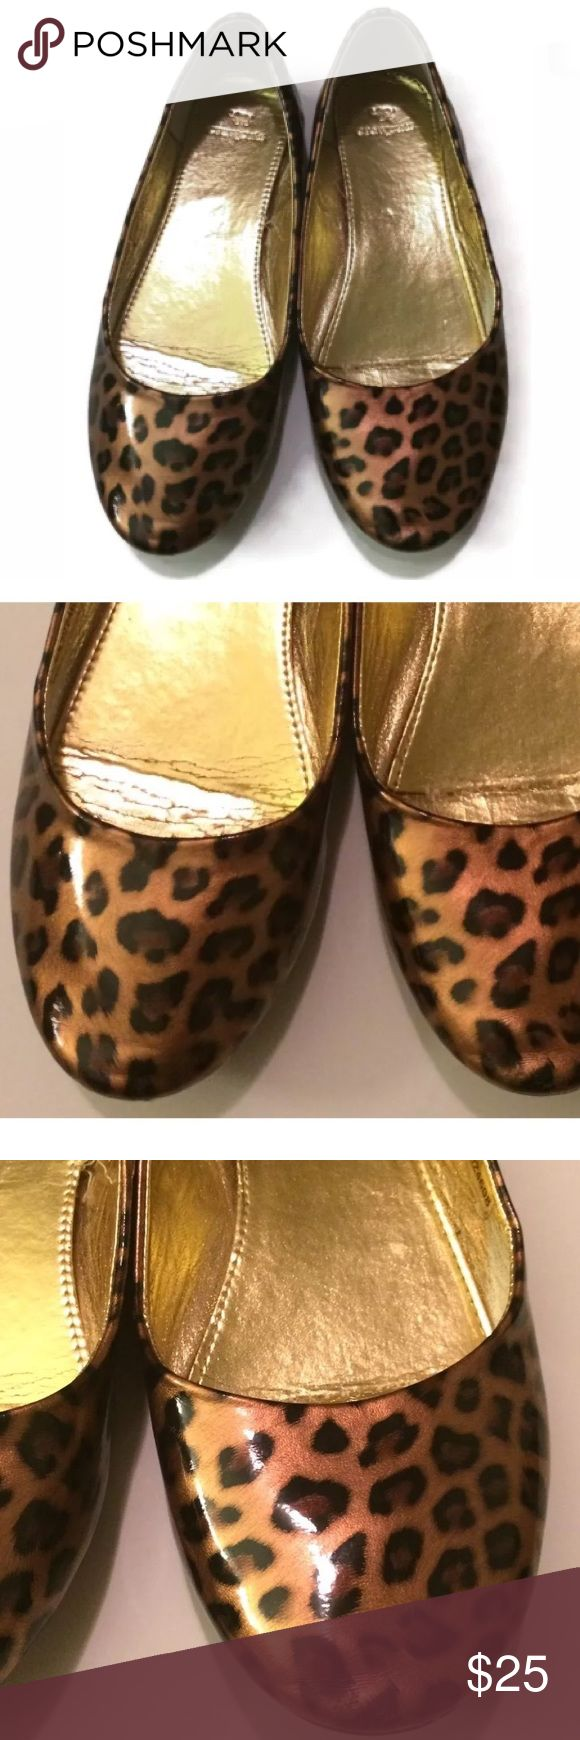 Crewcuts Patent Leather Ballet Flats 4 Toe: Round Style: Ballet Flats  Print: Leopard Animal Print  Embellishment: None Size: Big Kids 4 Color: Brown Fabric: Patent Leather  PRE-OWNED:  Very Good Condition J. Crew Shoes